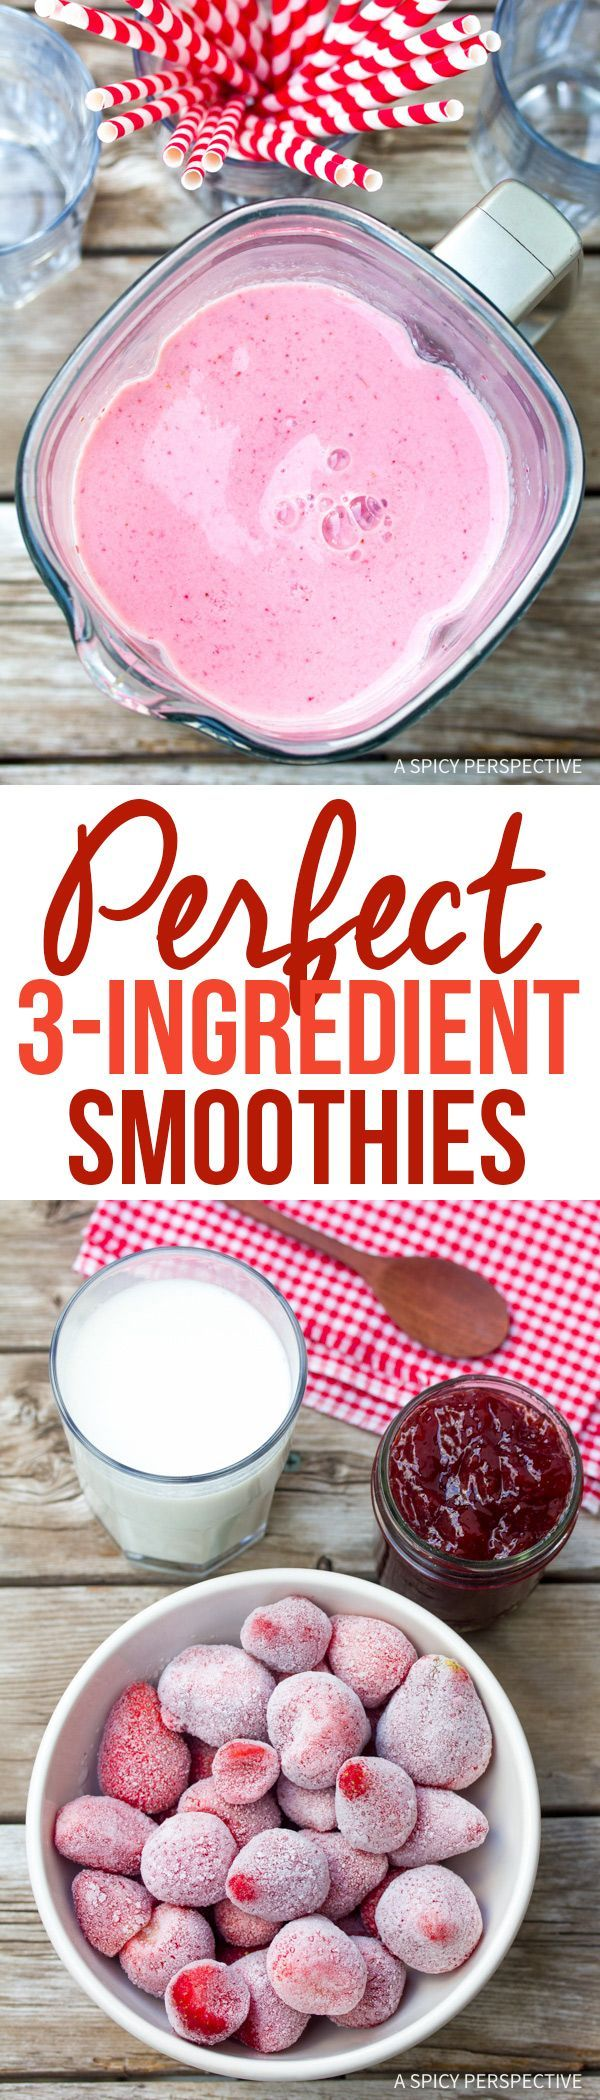 Perfect 3-Ingredient Simple Strawberry Smoothies Recipe